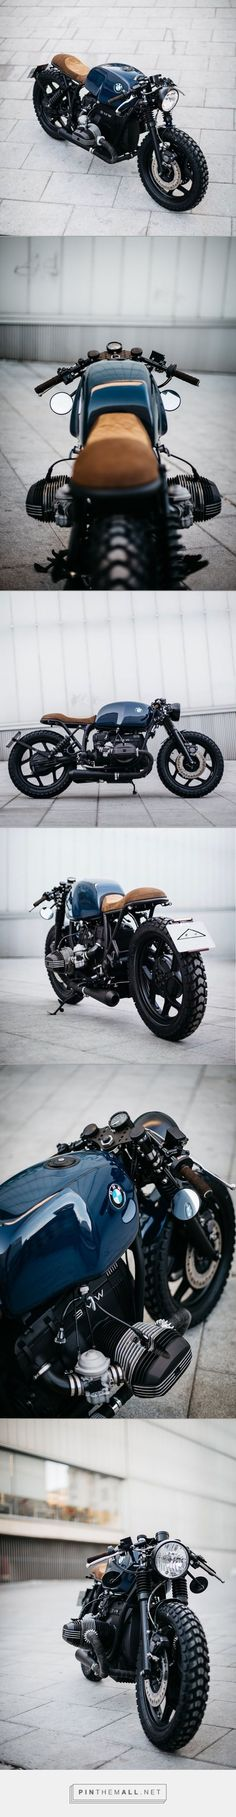 ROA Motorcycles BMW R80 [CFCM] Motor Cafe Racer, Bmw Cafe Racer, Cafe Racer Style, Custom Cafe Racer, Cafe Bike, Moto Cafe, Motos Harley, Cafe Racing, Custom Motorcycles